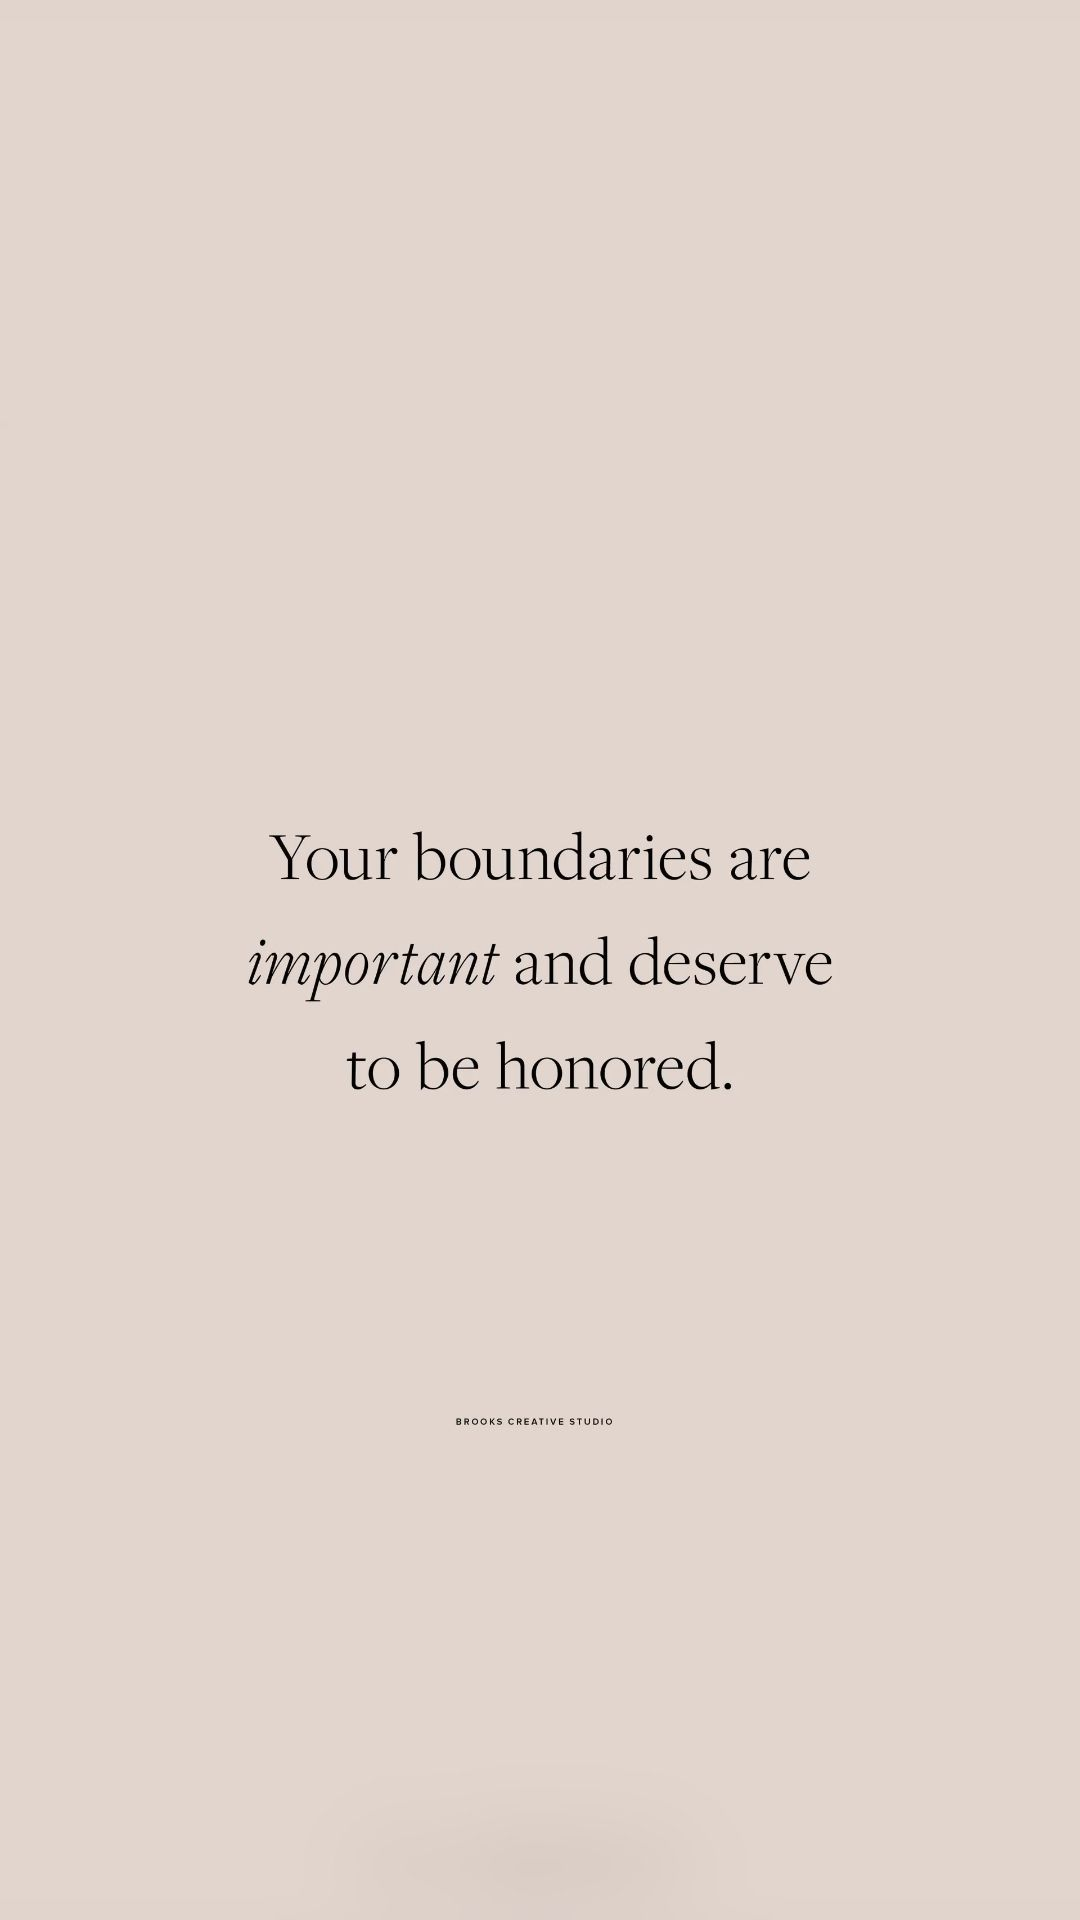 Boundary Affirmations for Creatives